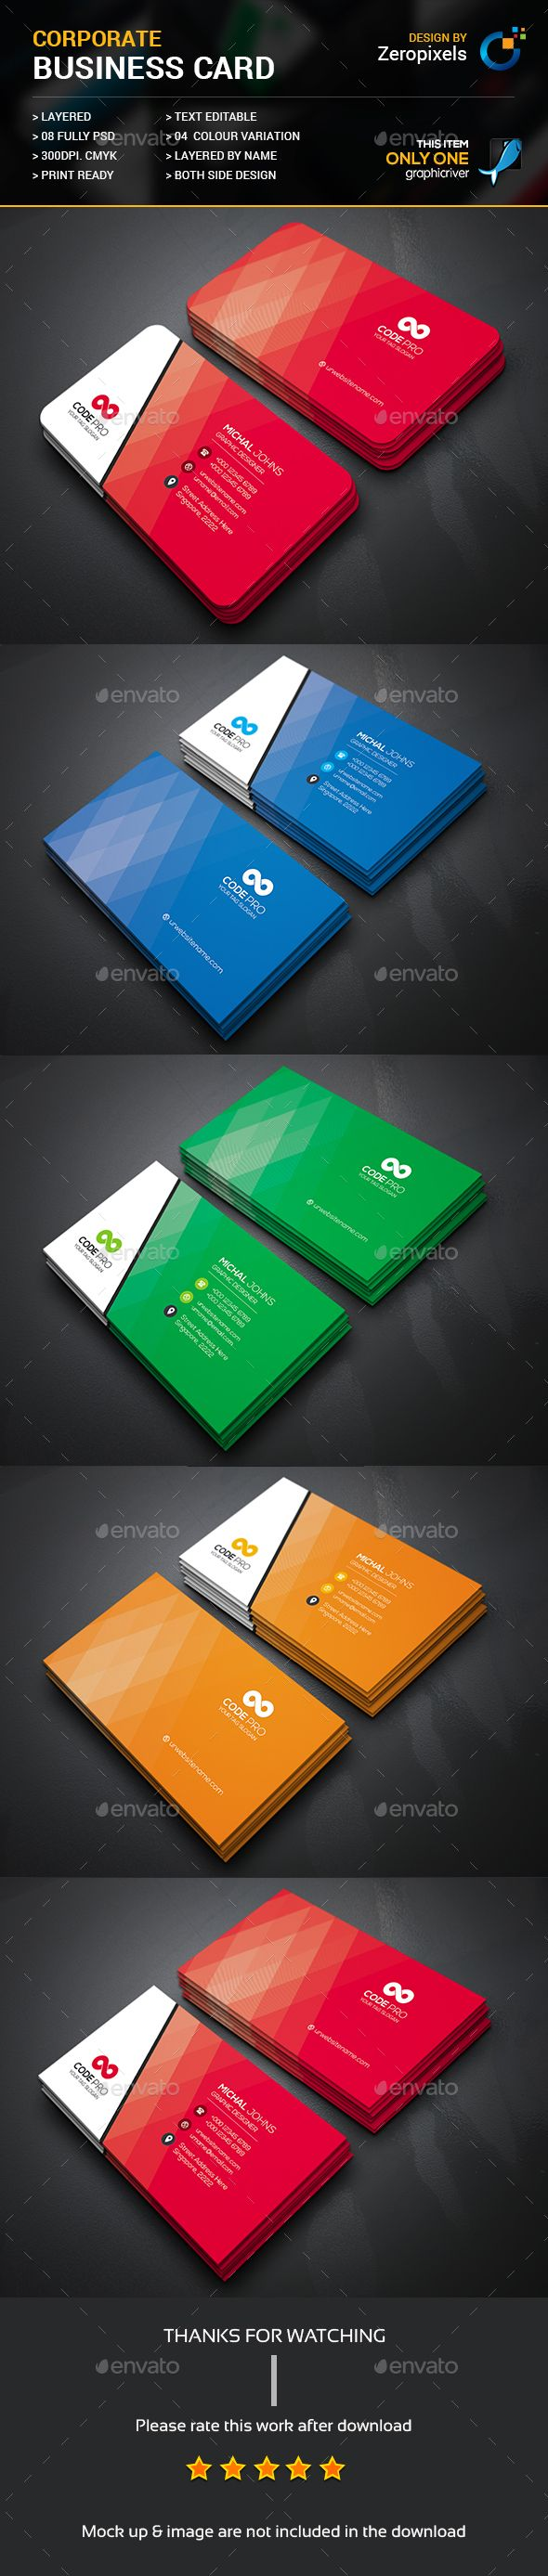 Best Business Card Images On Pinterest Business Card Design - Computer repair business card template